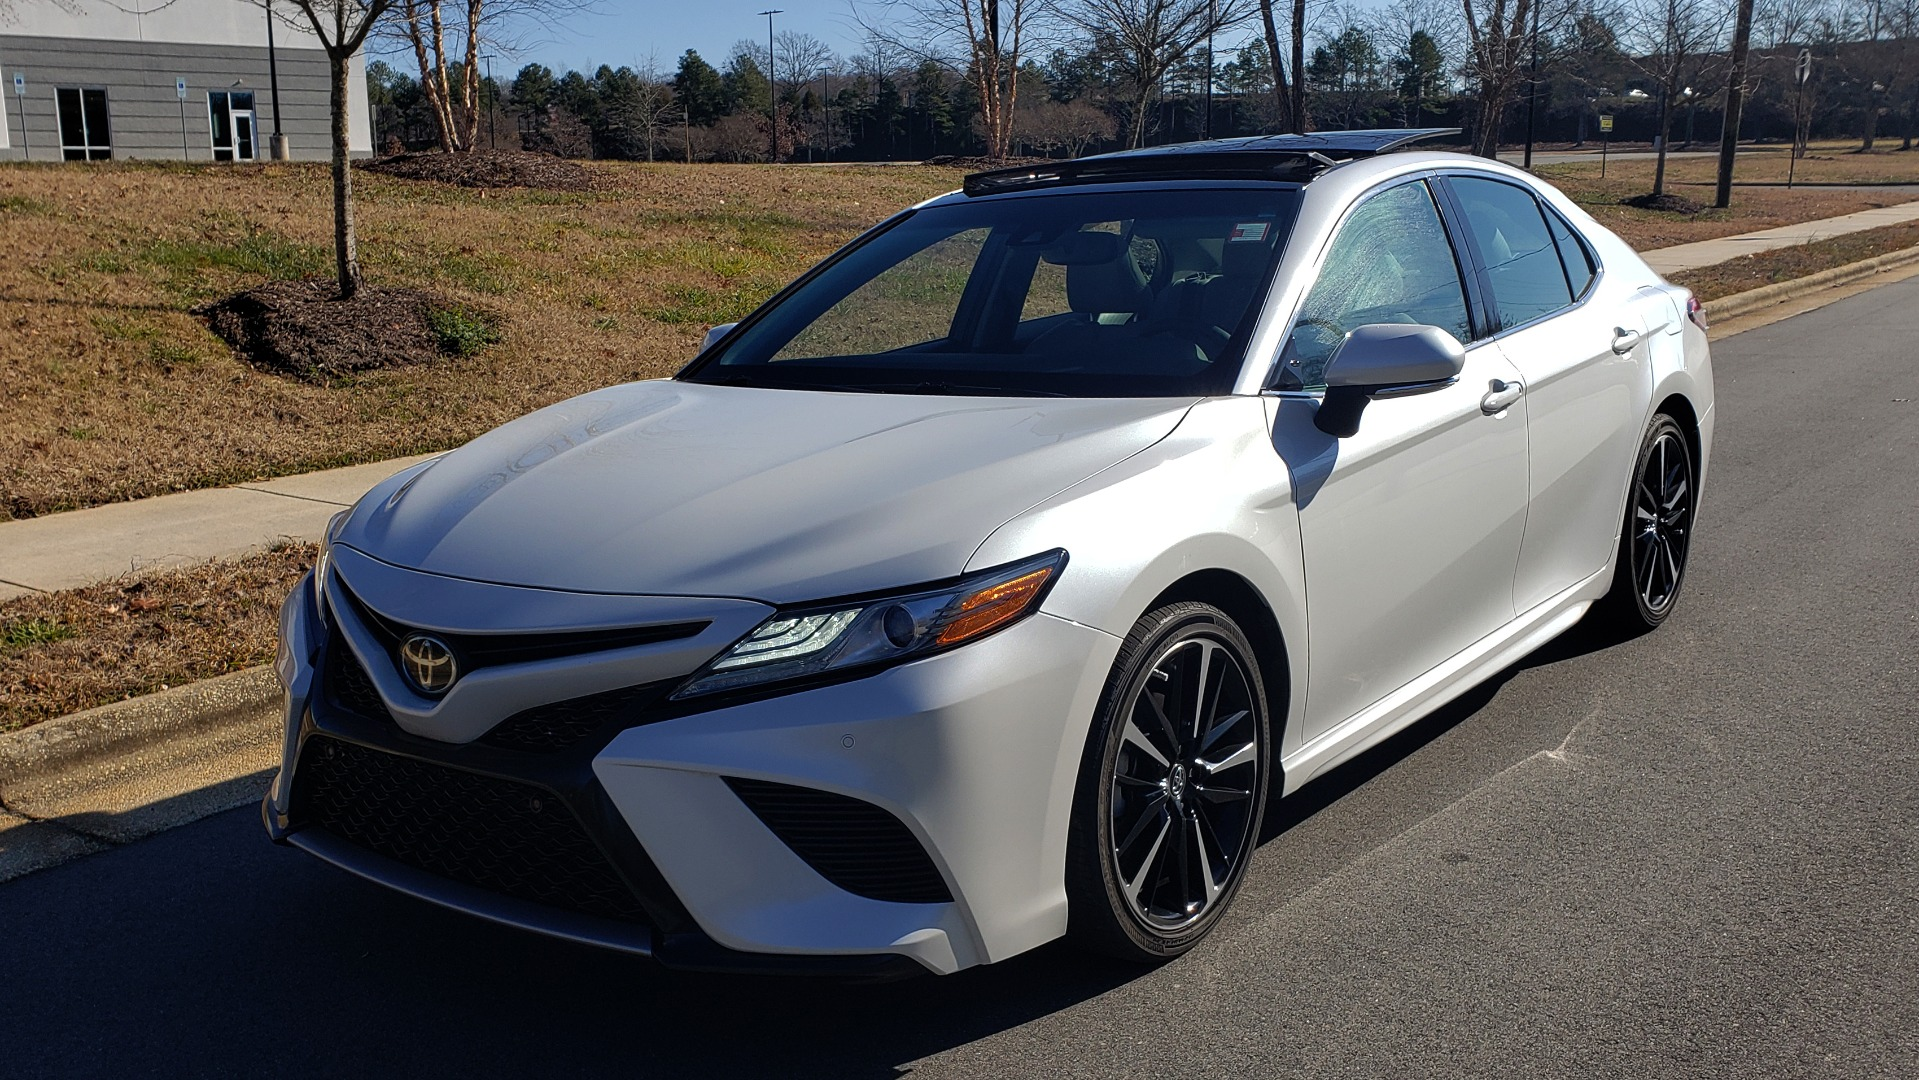 Used 2018 Toyota CAMRY XSE 2.5L SEDAN / 8-SPD AUTO / PANO-ROOF / 19IN WHEELS for sale Sold at Formula Imports in Charlotte NC 28227 1